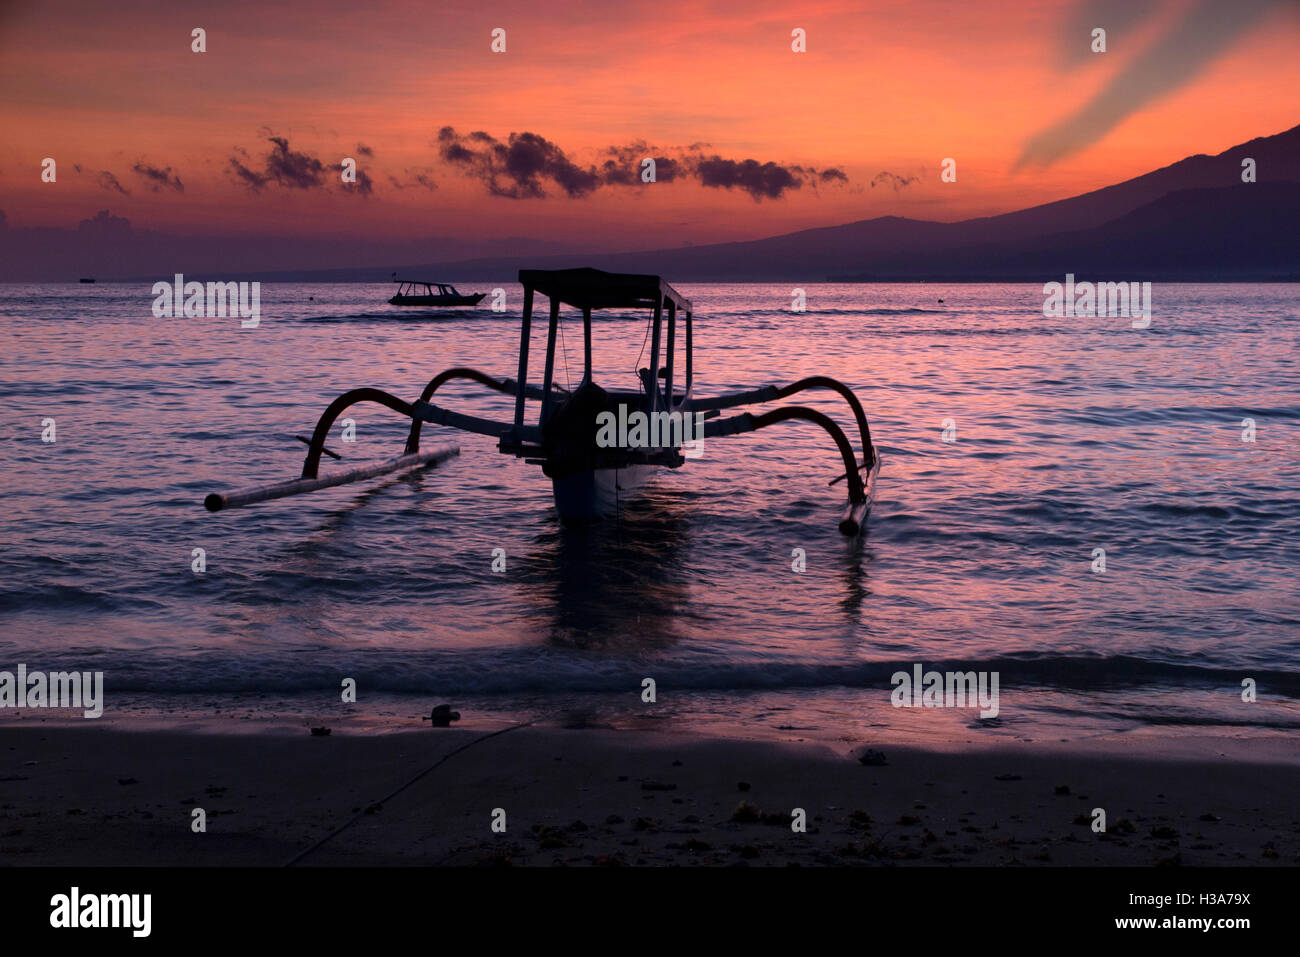 Indonesia, Lombok, Gili Air, sunrise over Guning Rinjani from west coast - Stock Image